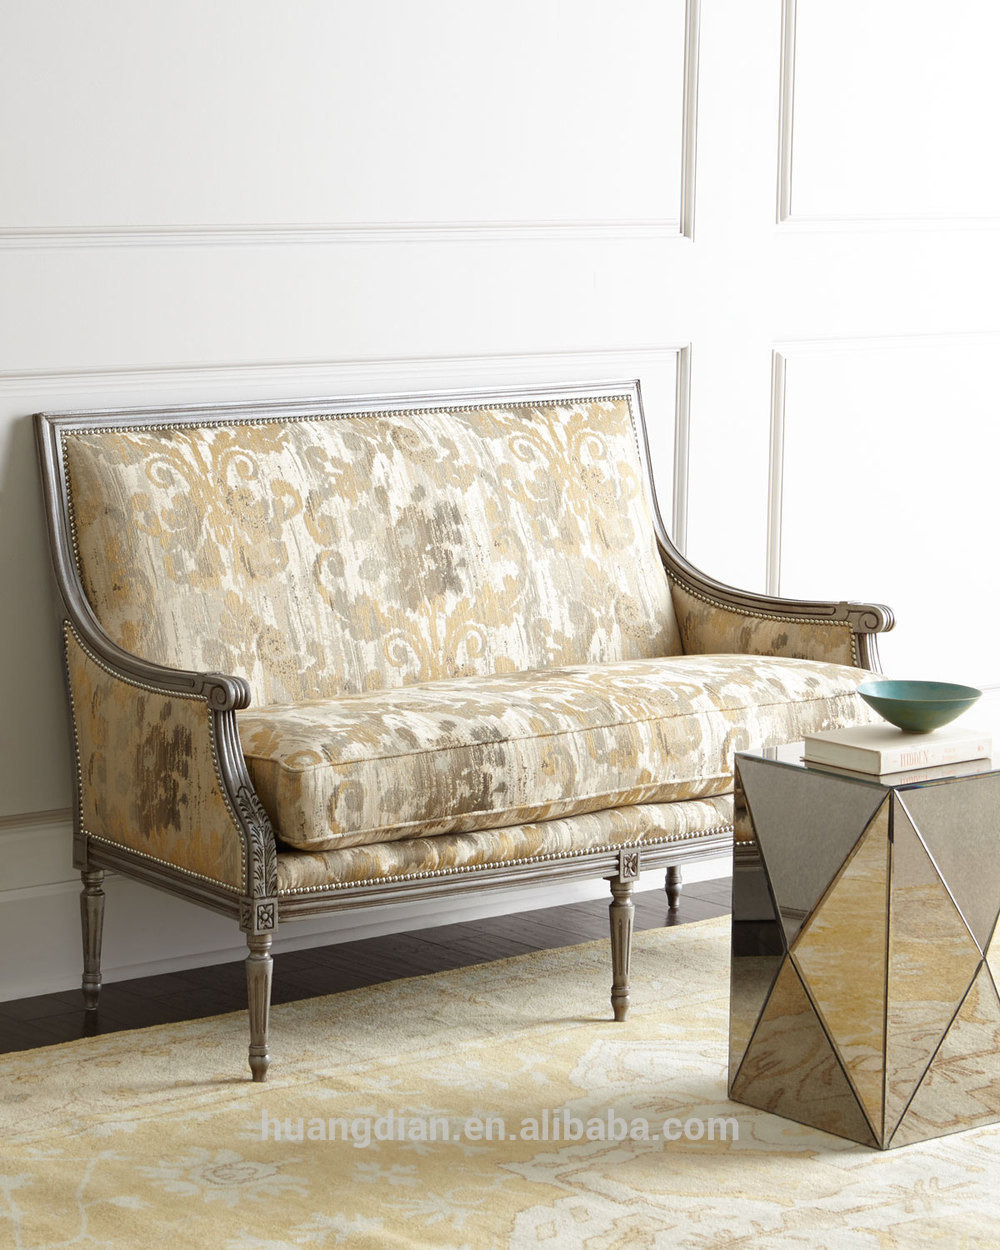 Wholesale Antique Furniture Suppliers Lovely Retro Antique sofa Ethiopian Furniture wholesale Couches Buy Retro Antique sofa Ethiopian Furniture Chesterfield sofa Replica Furniture Living Room